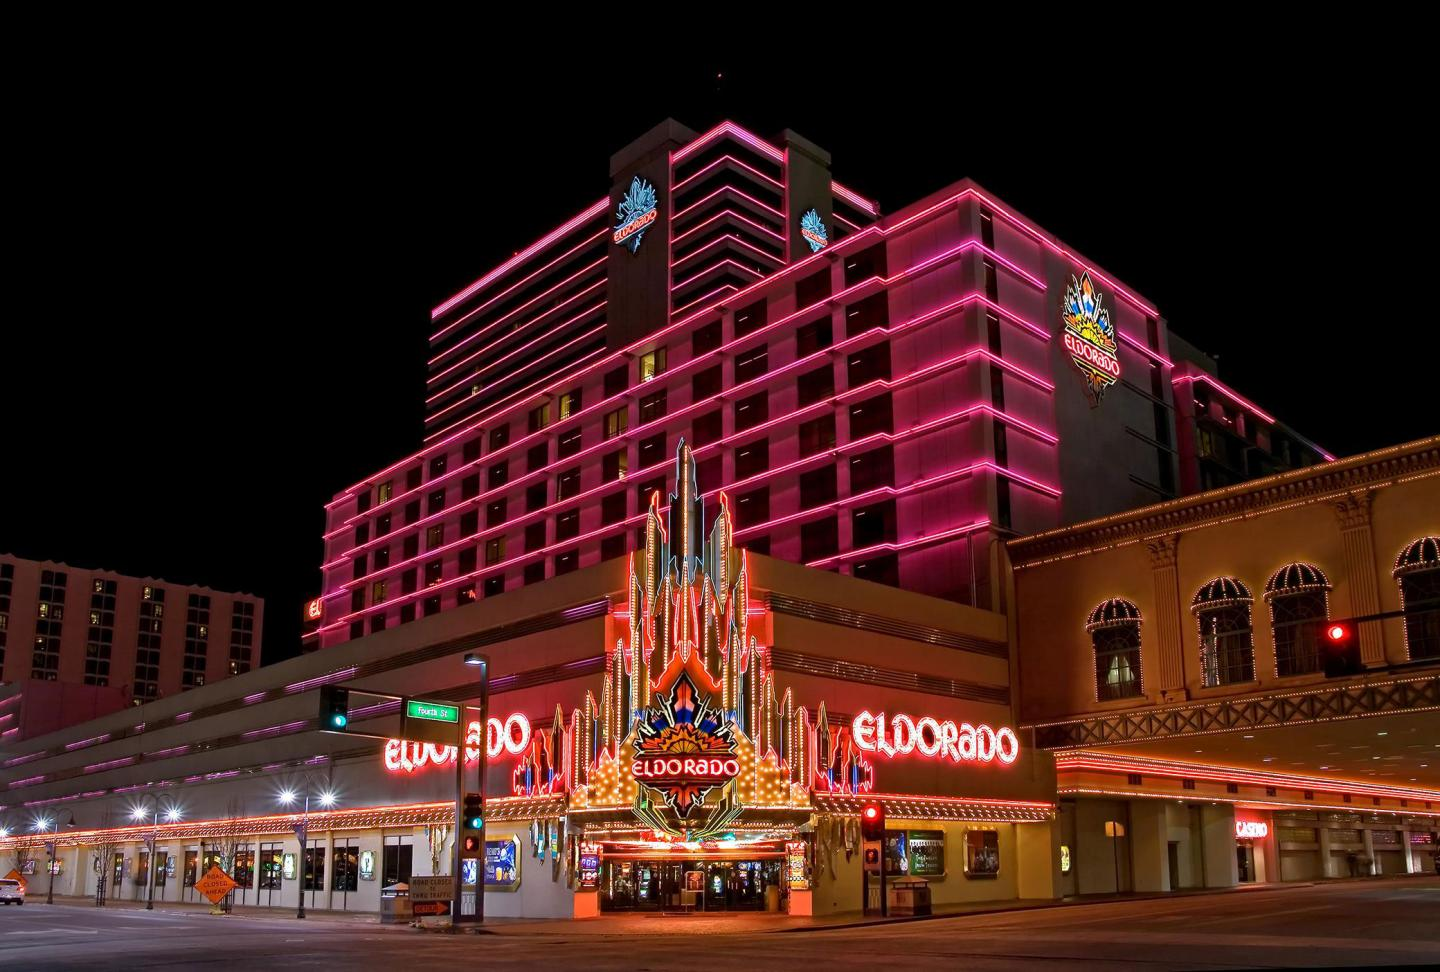 Eldorado hotel and casino reno new winn casino